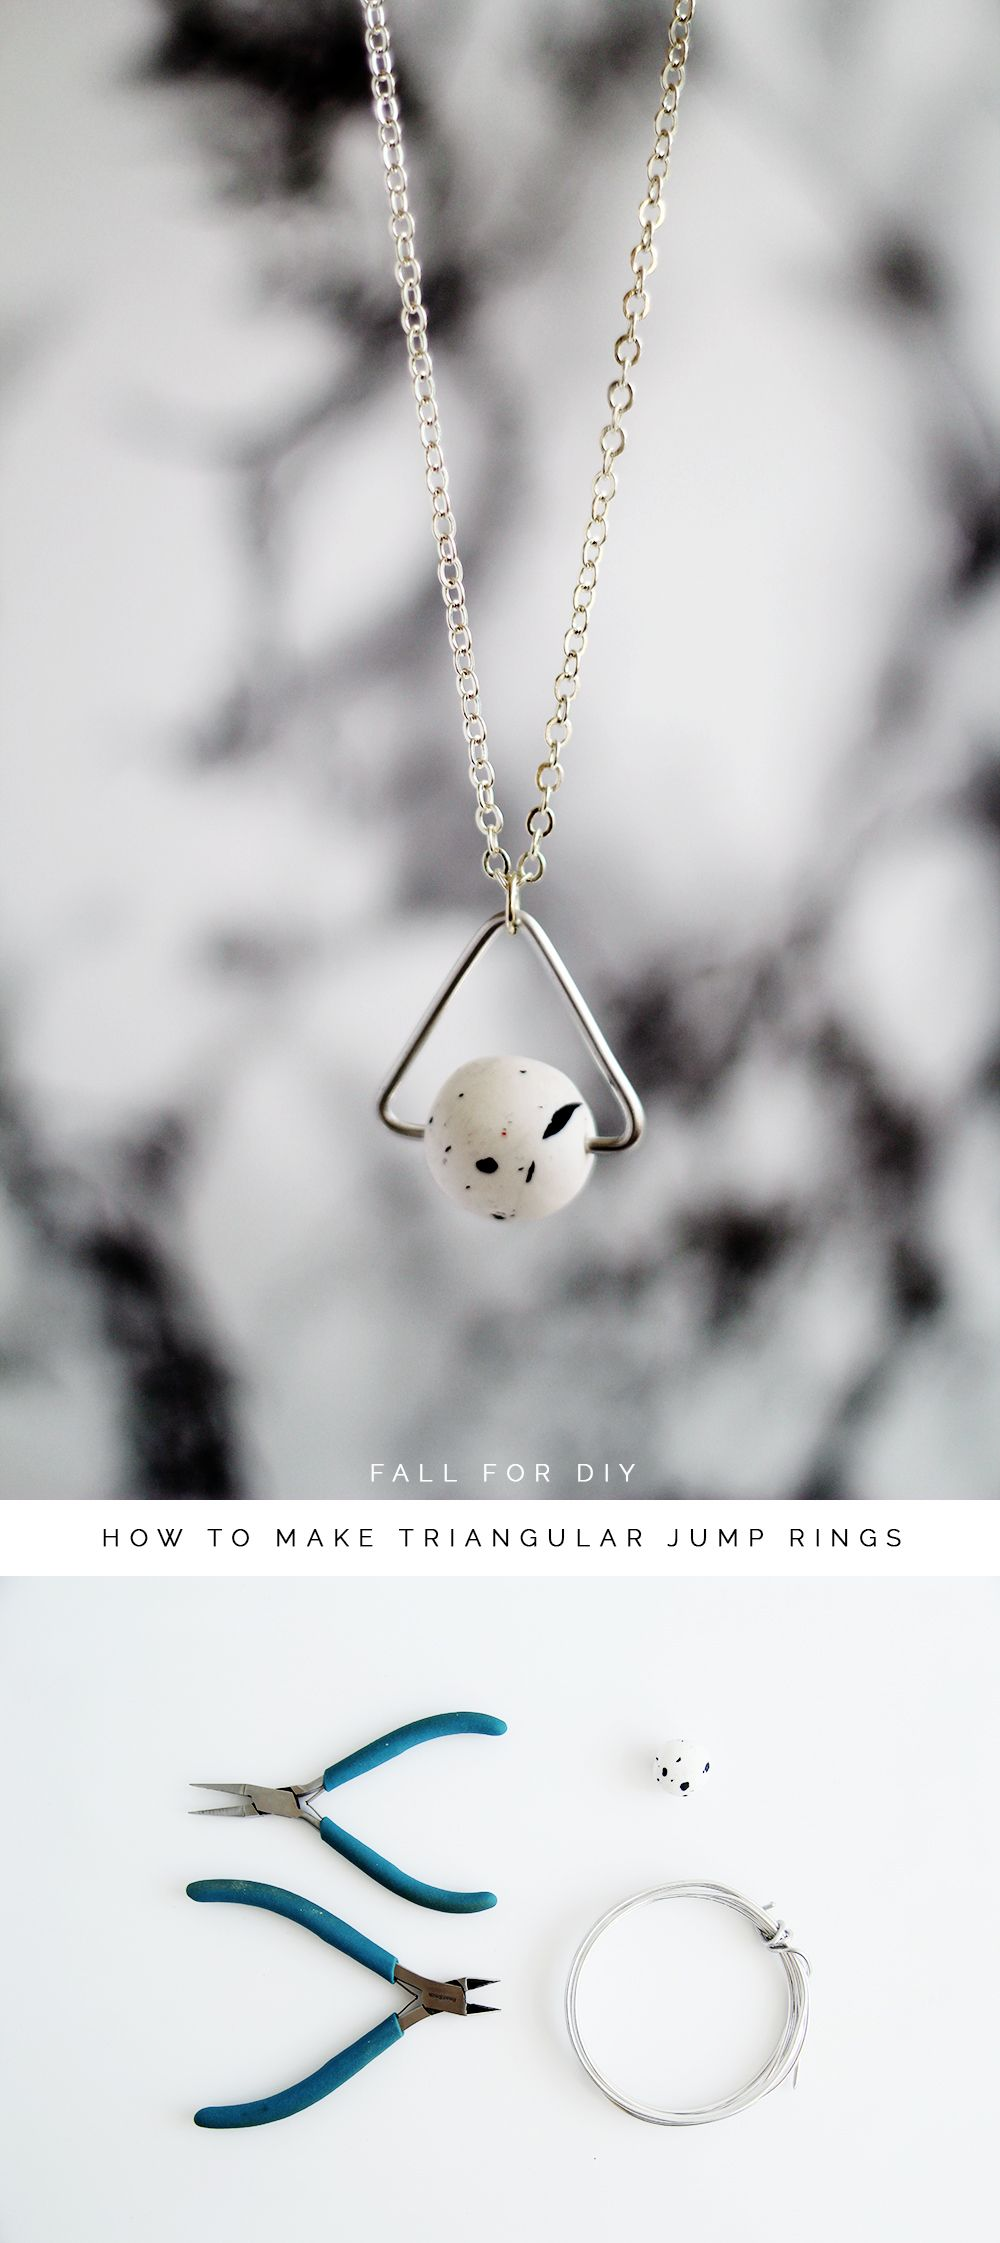 extravaganza ring tag necklace jump crafting tutorial